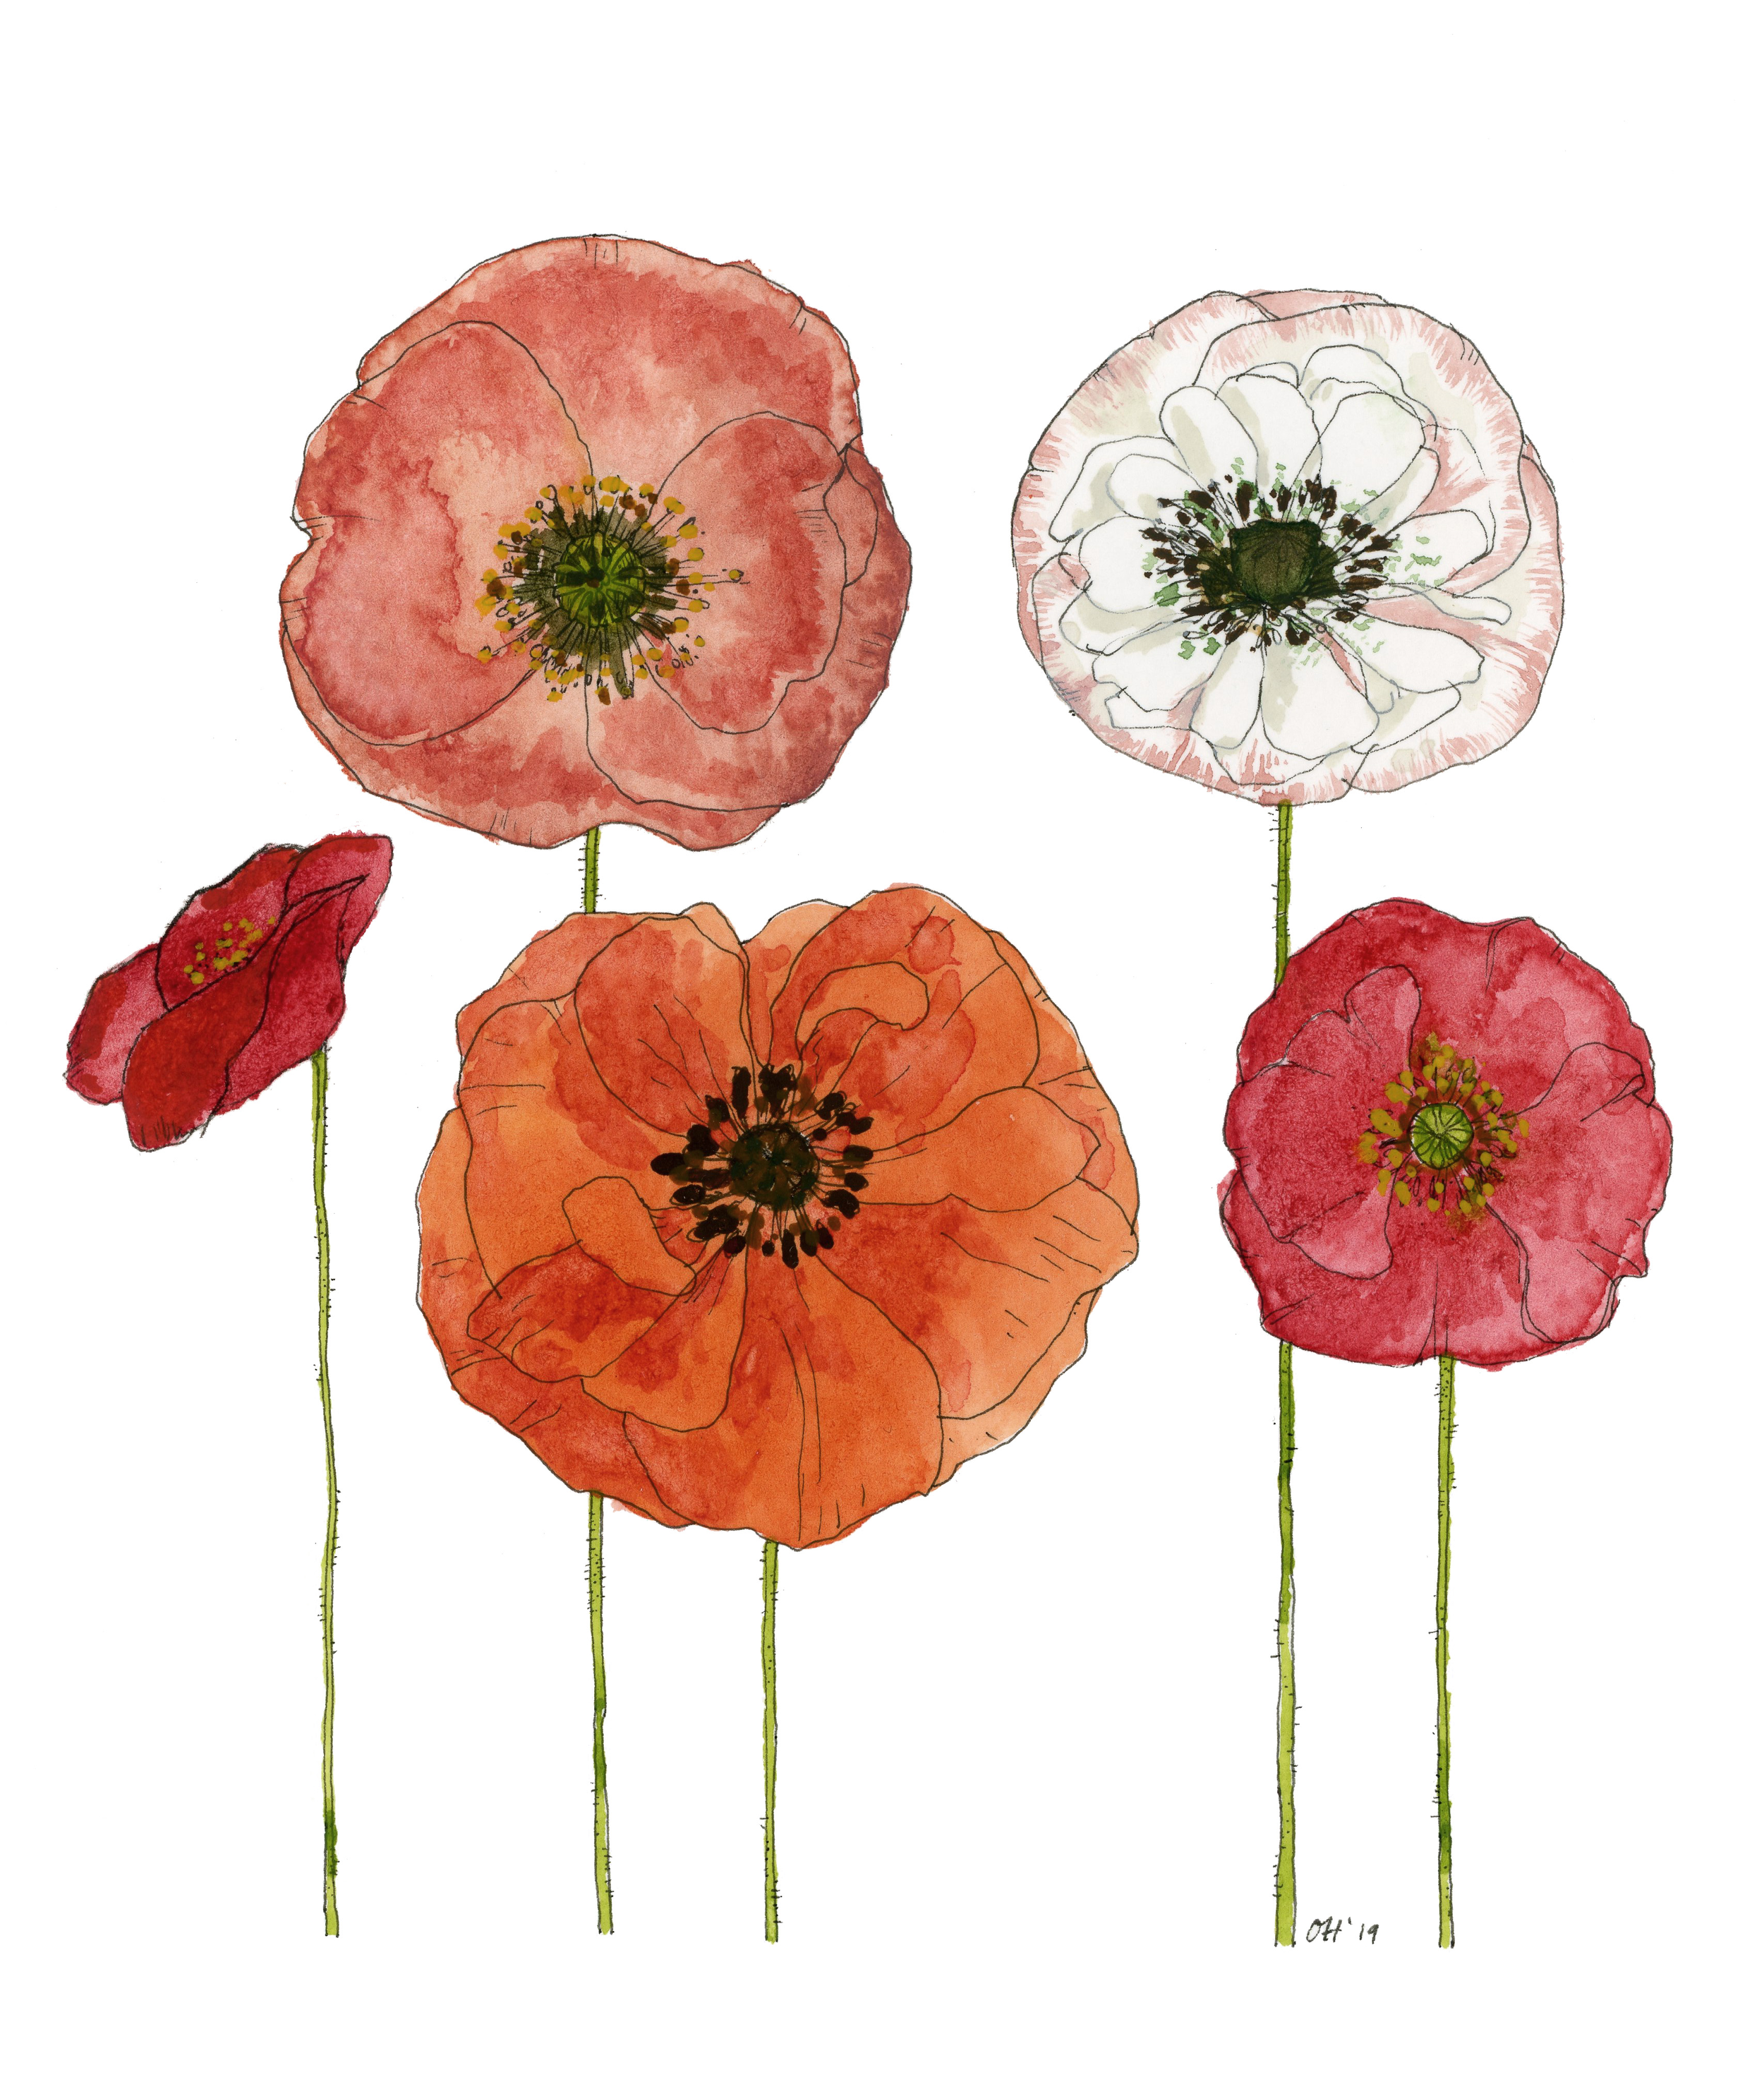 Poppies 2019 Watercolor and Micron pen